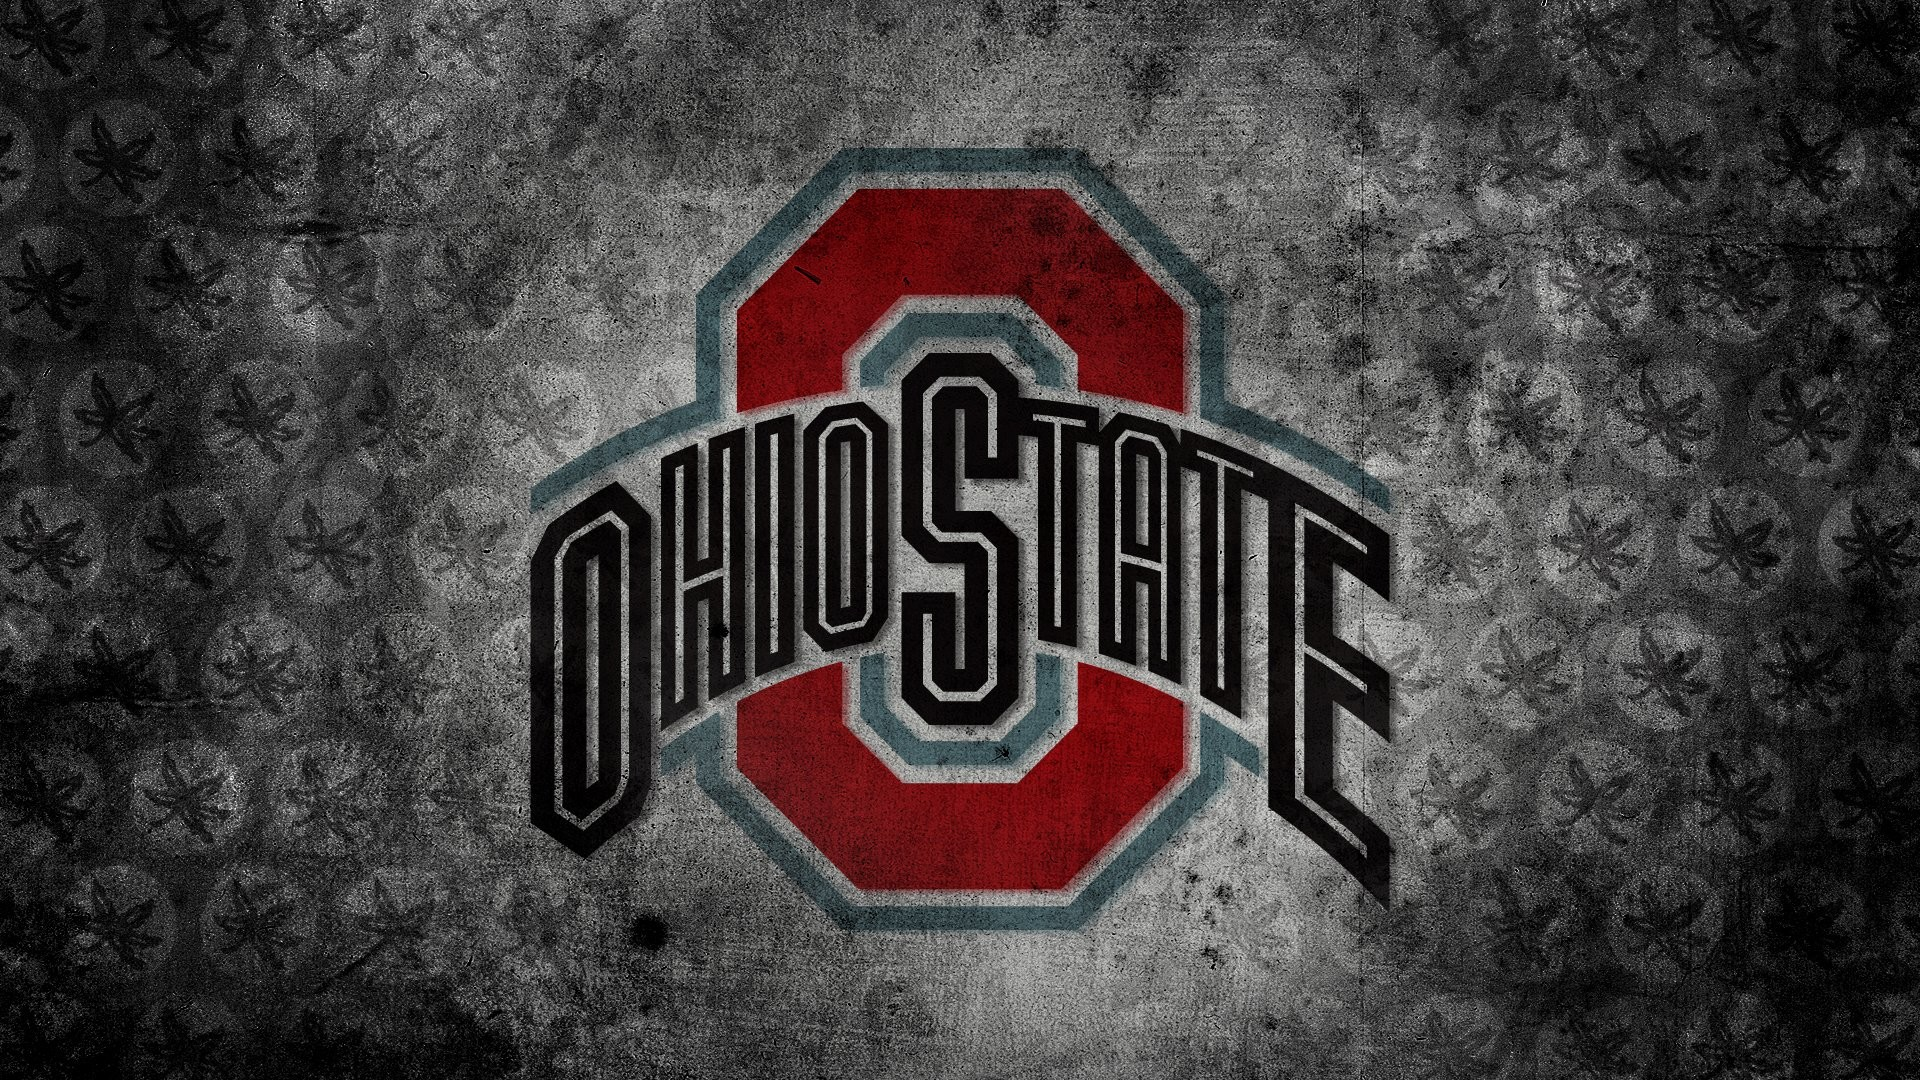 1920x1080 OHIO STATE BUCKEYES college football poster wallpaper |  .